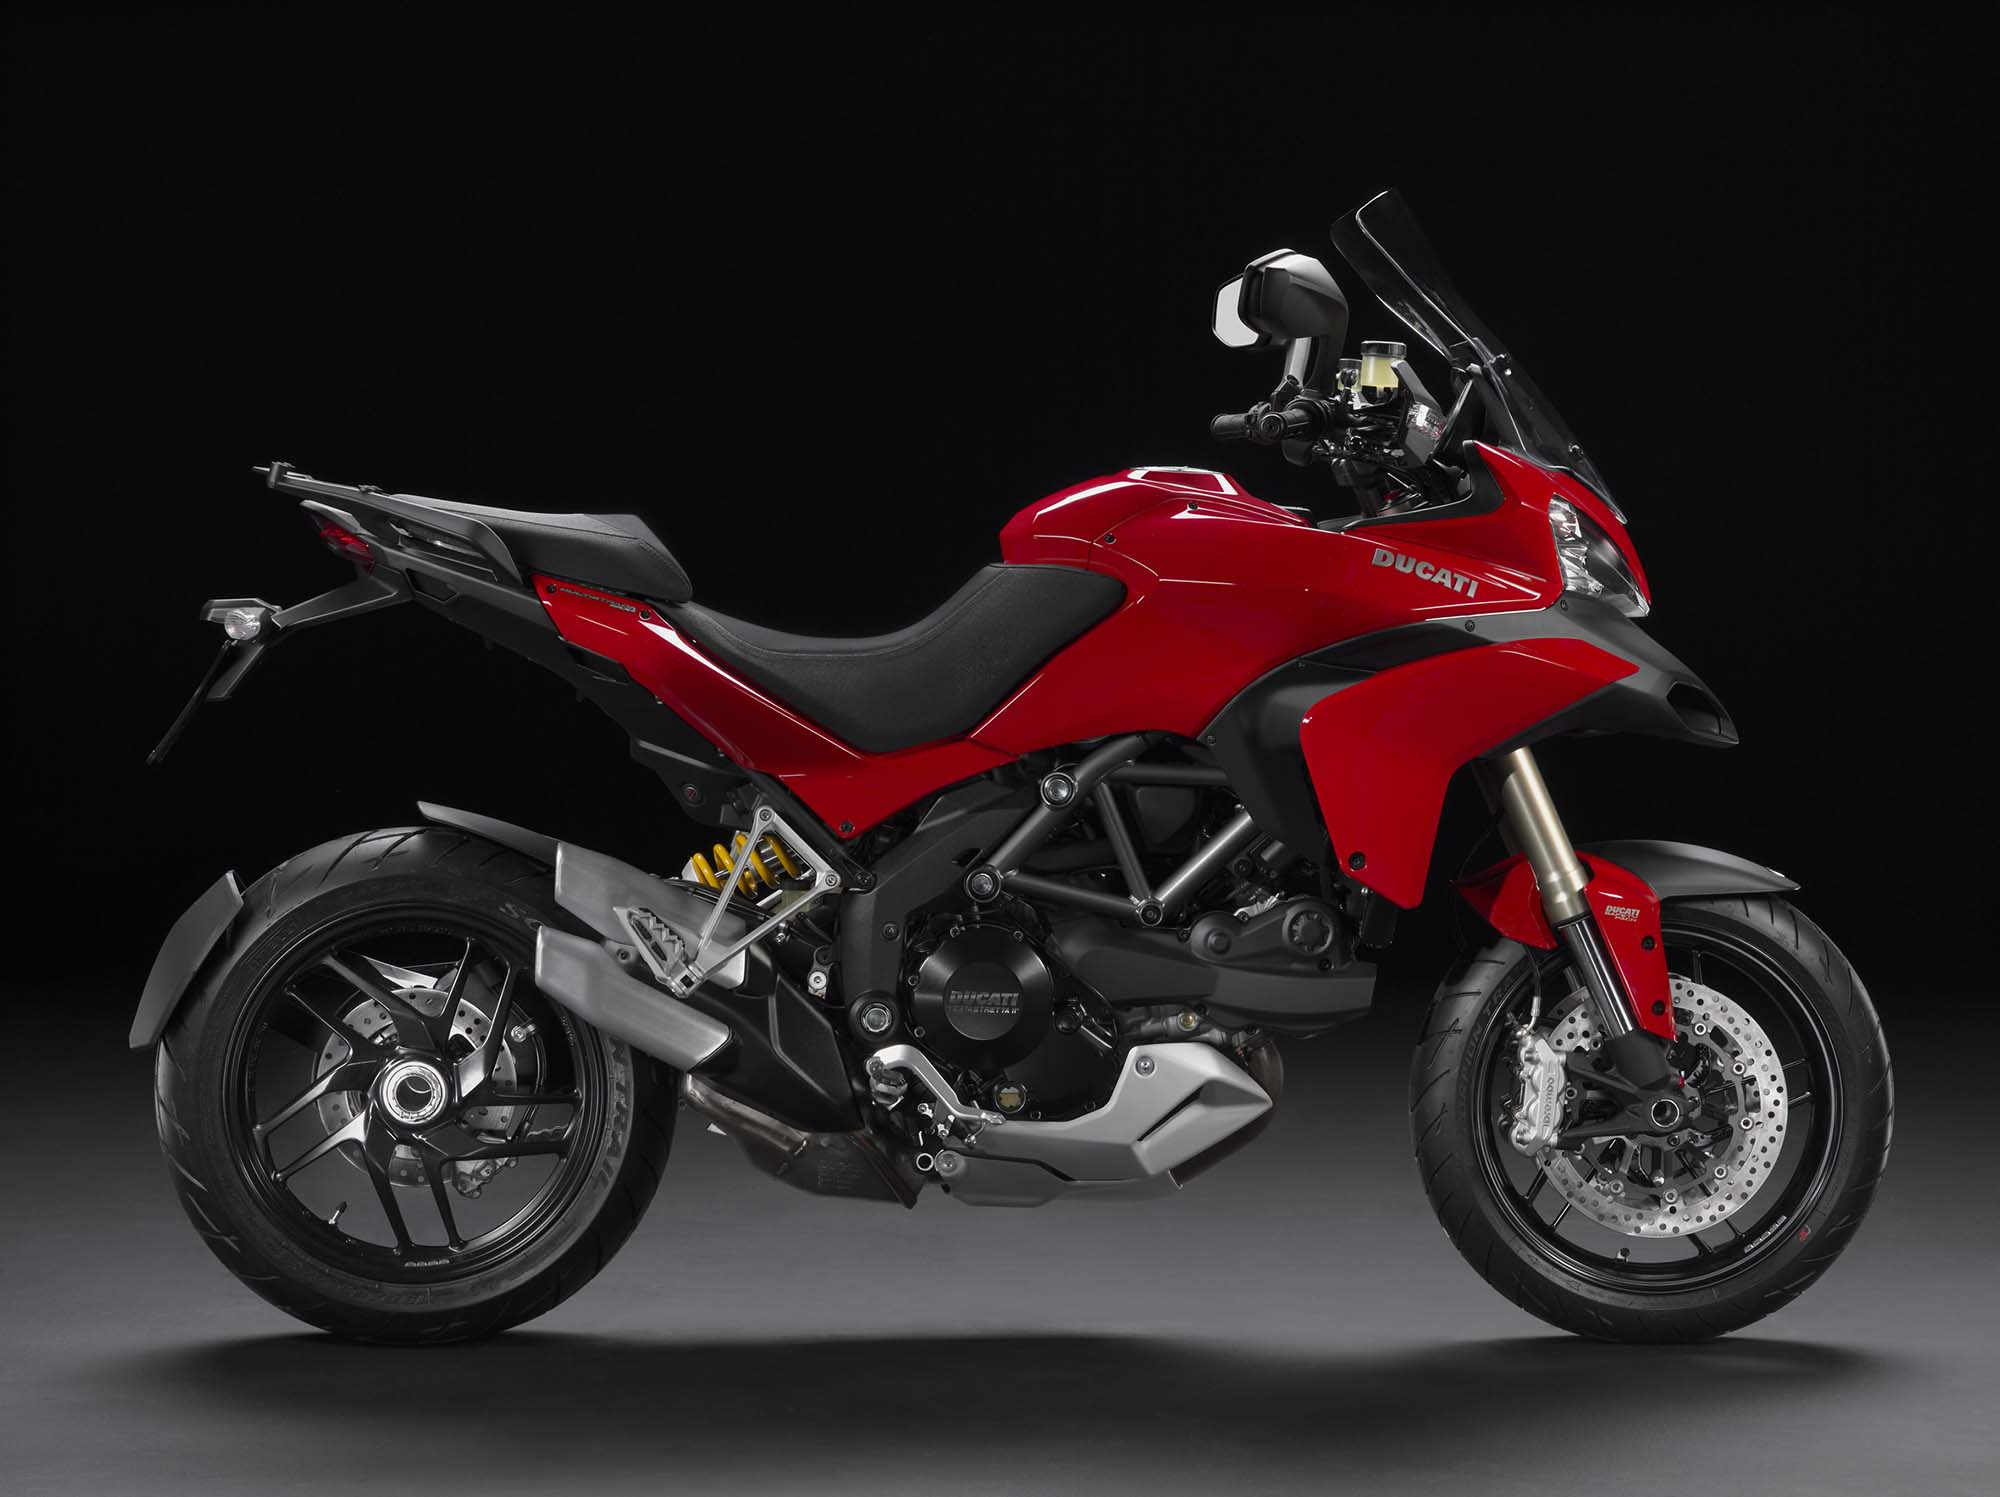 69 Photos of the 2013 Ducati Multistrada 1200 - Asphalt ...